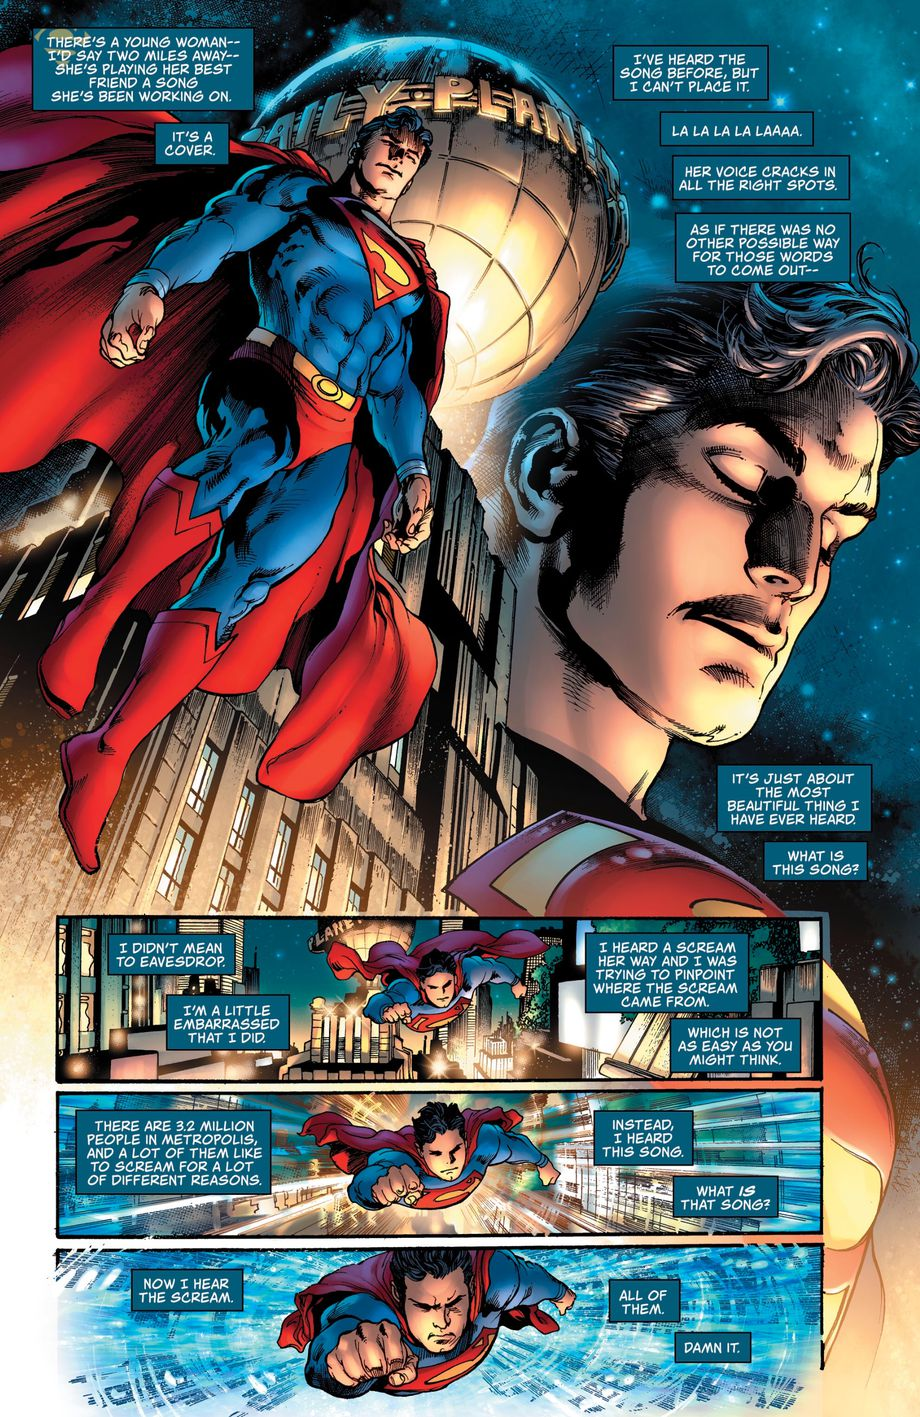 The Man of Steel, the man of steel #1, Rogul Zaar, Brian Michael Bendis, superman, krypton